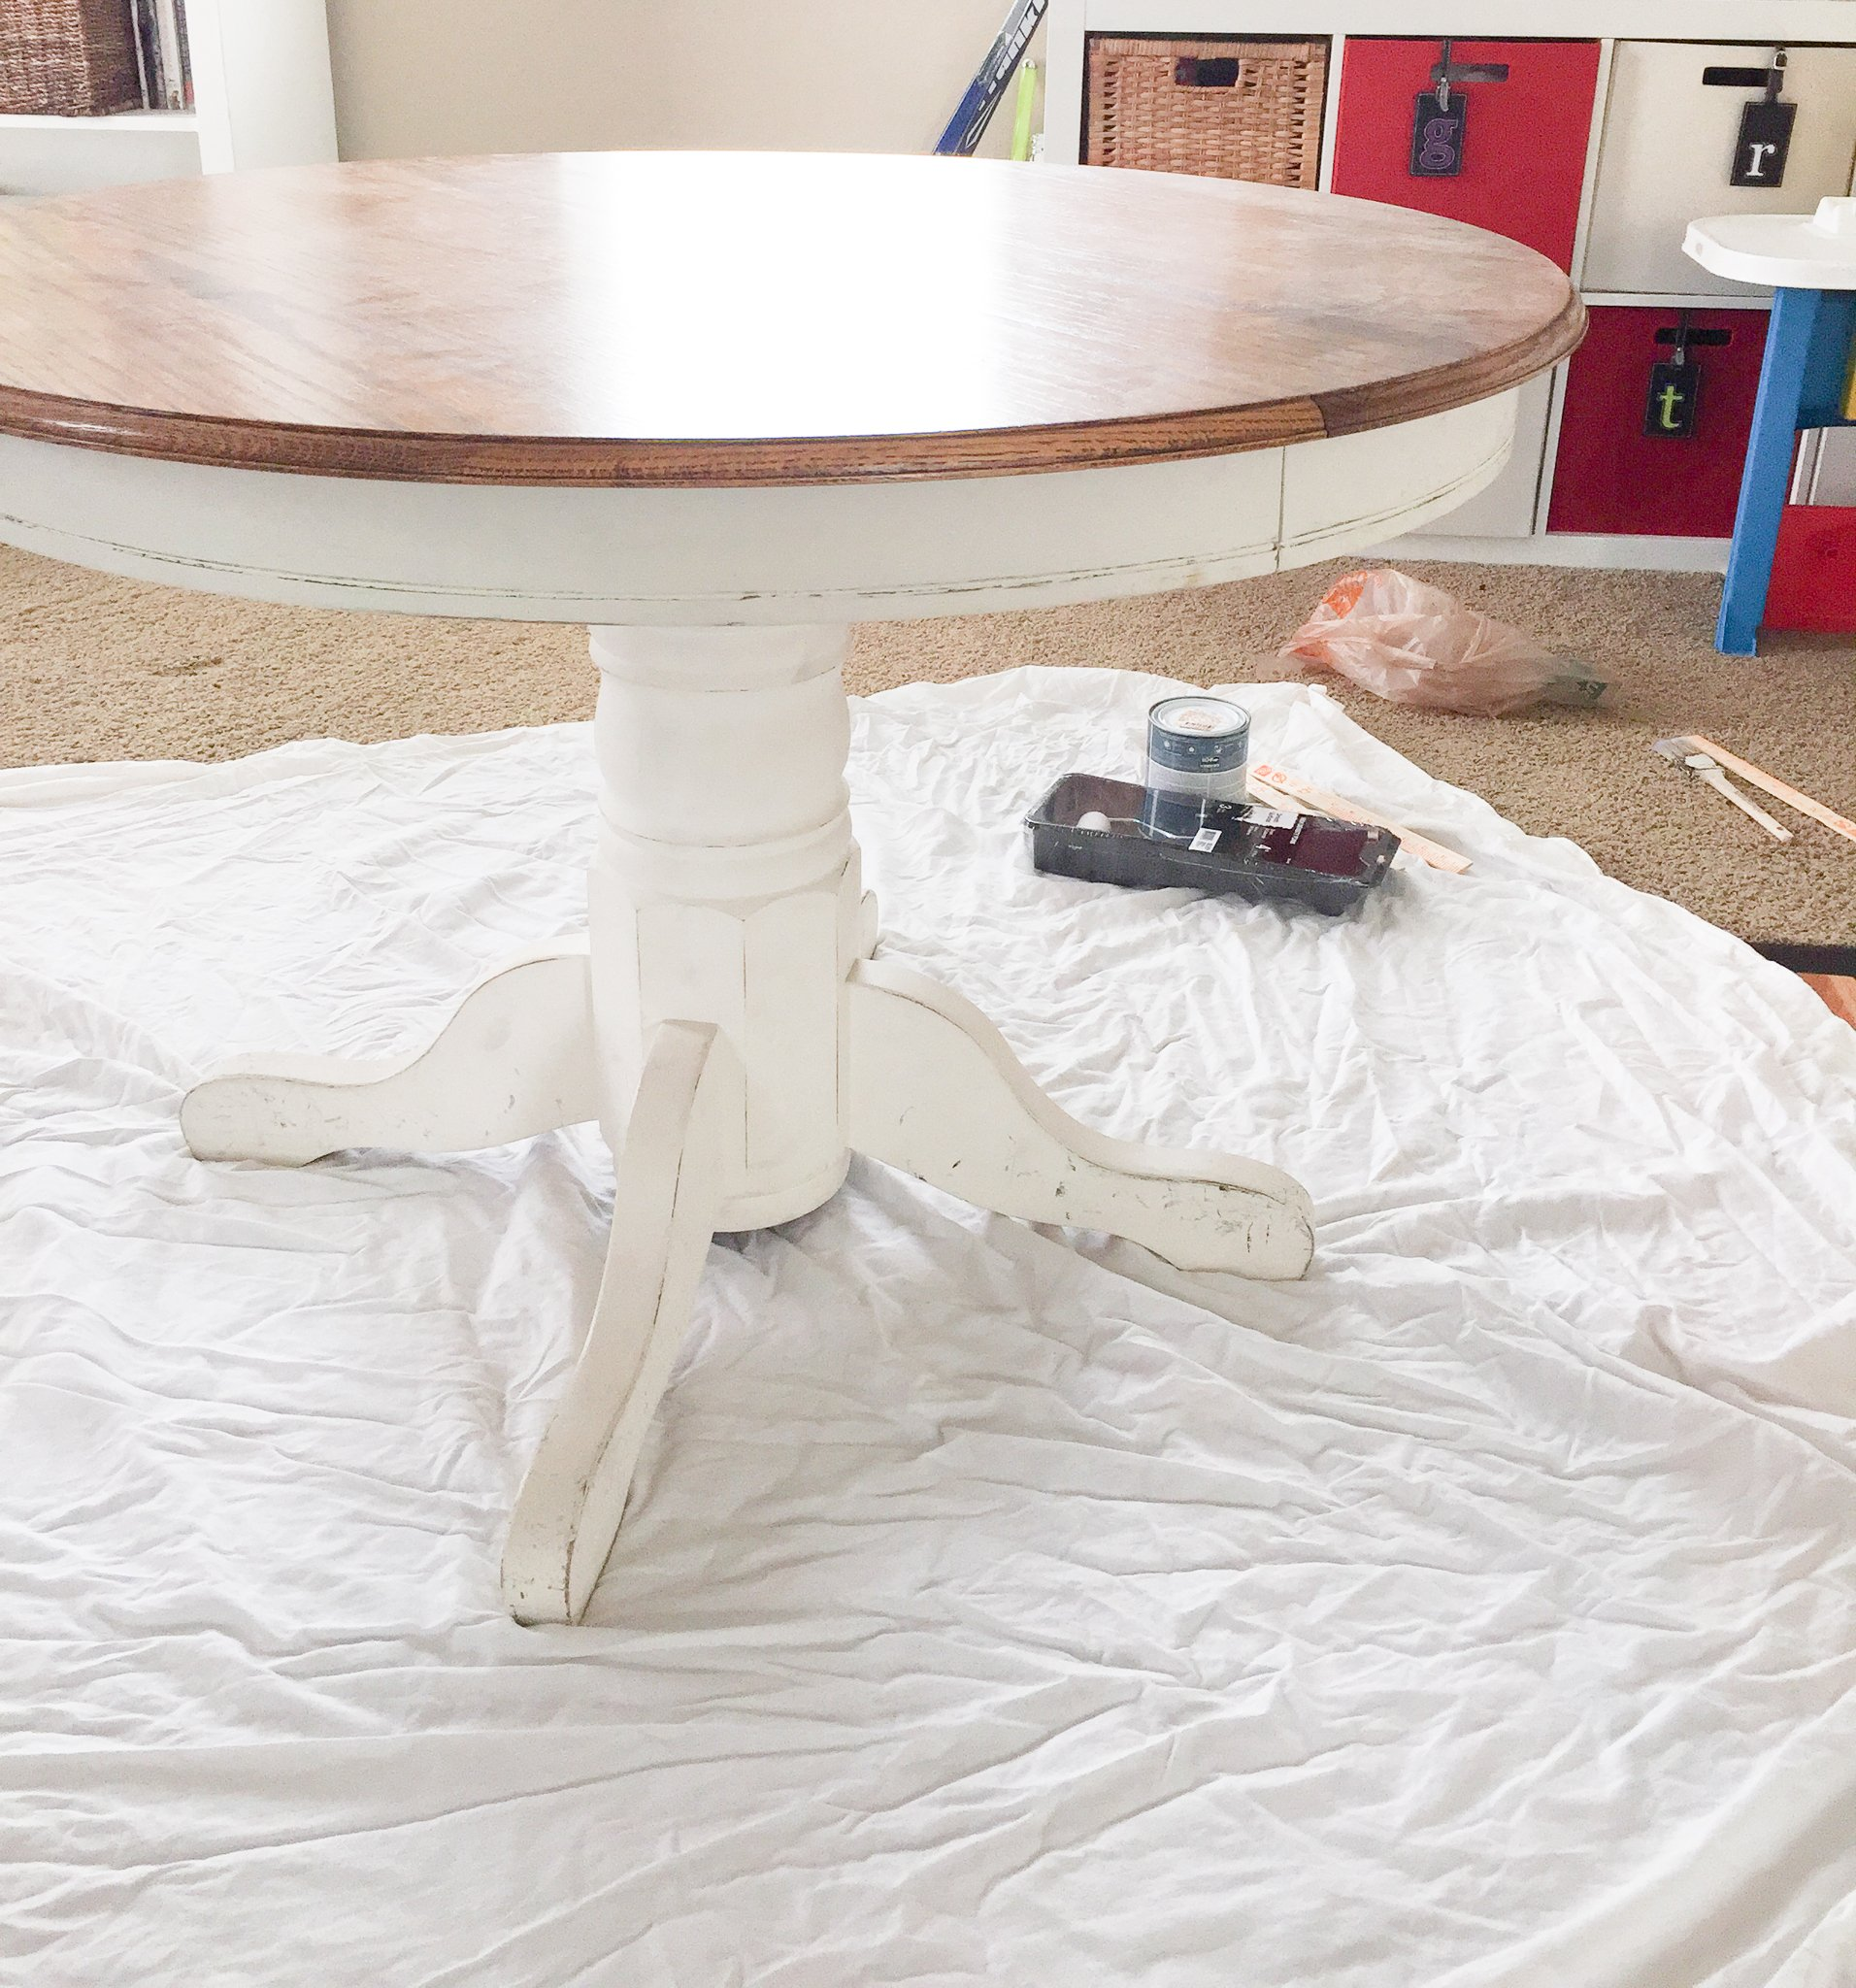 How to paint a table a thoughtful place painting a table 4 geotapseo Choice Image